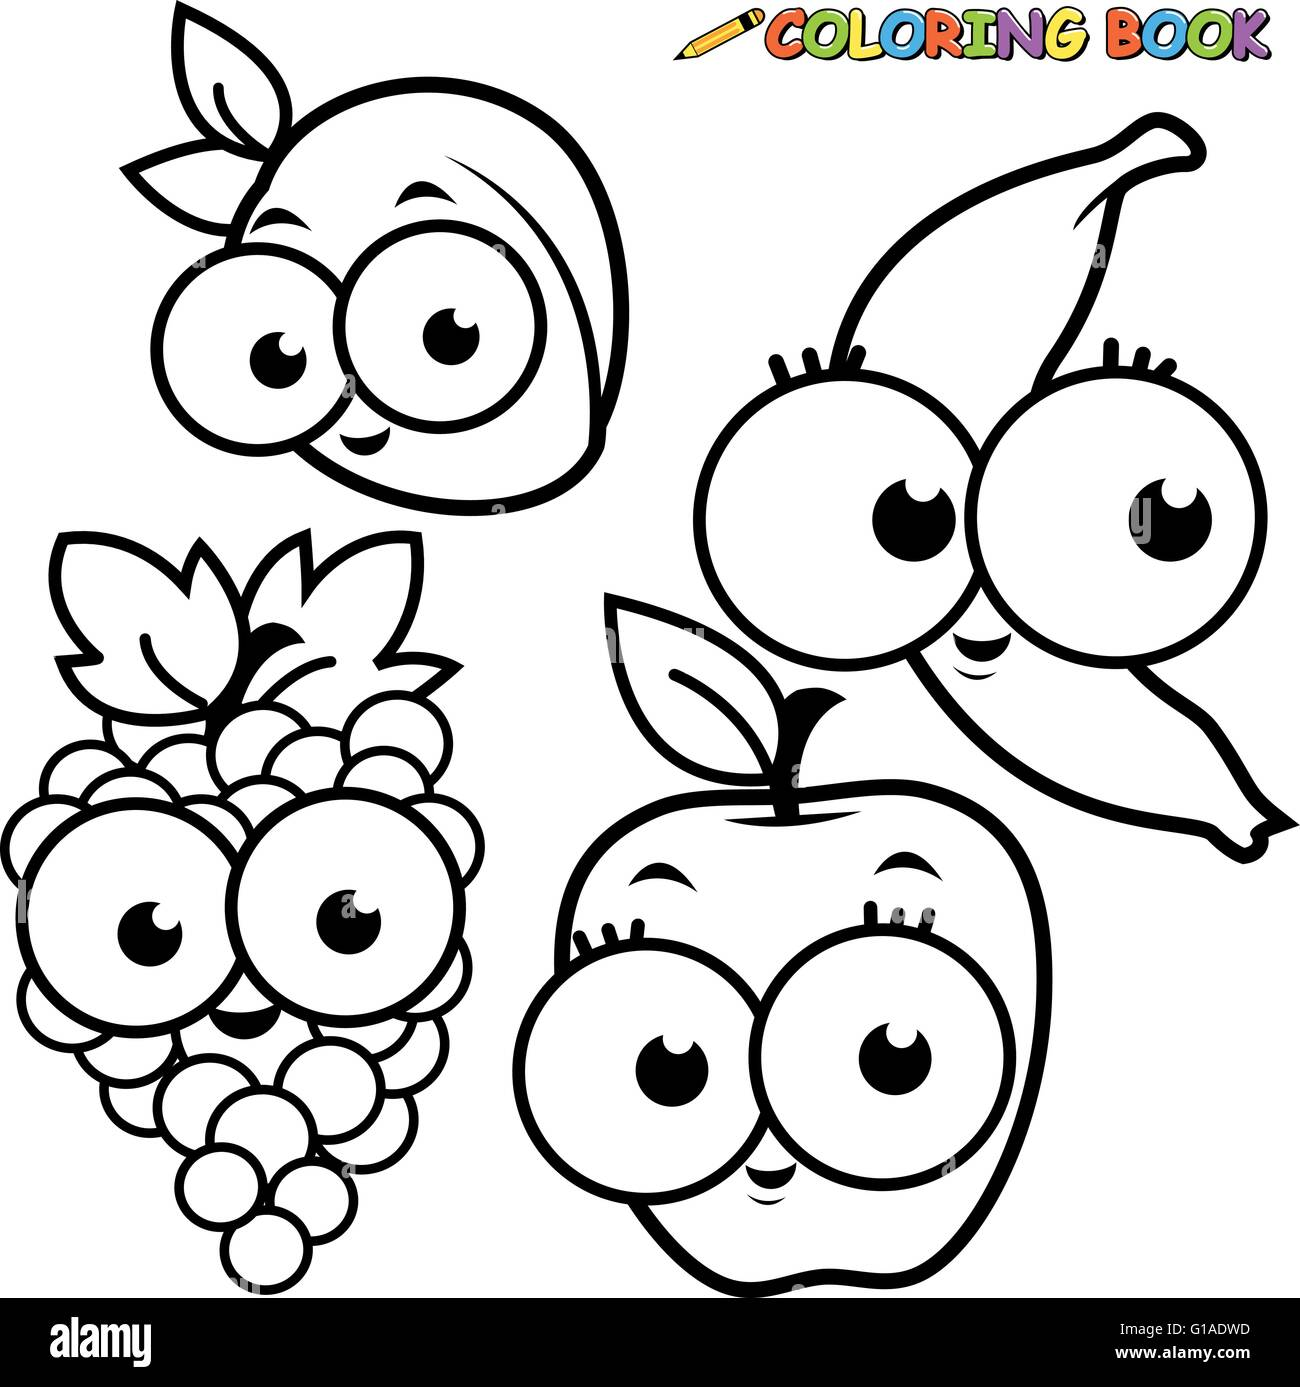 black and white outline image of fruit cartoons apricot banana